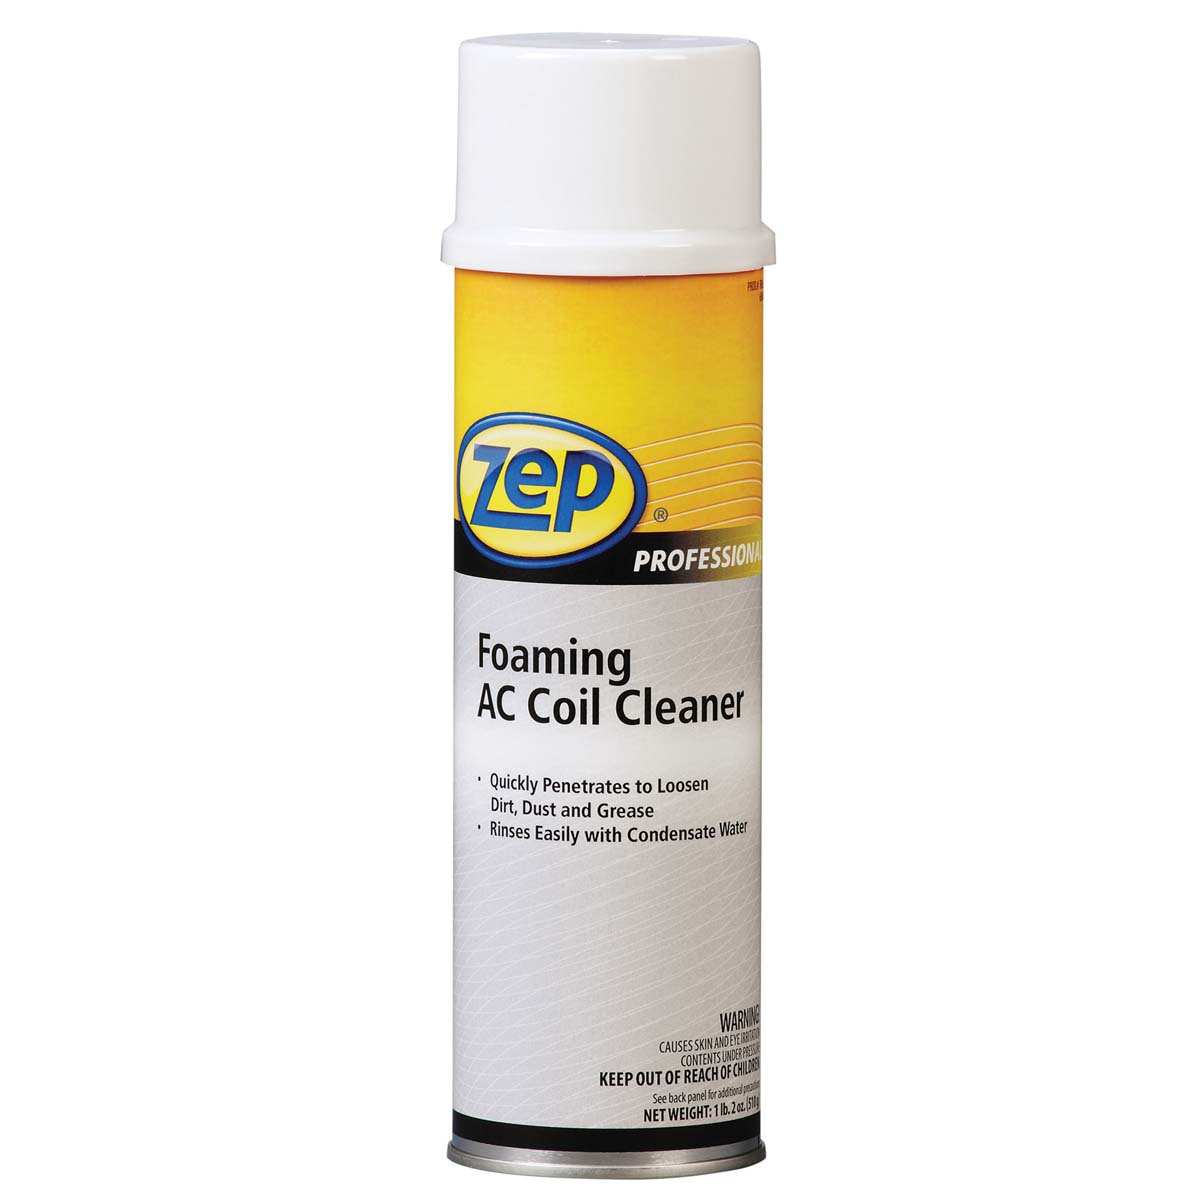 ZEP Foaming AC Coil Cleaner